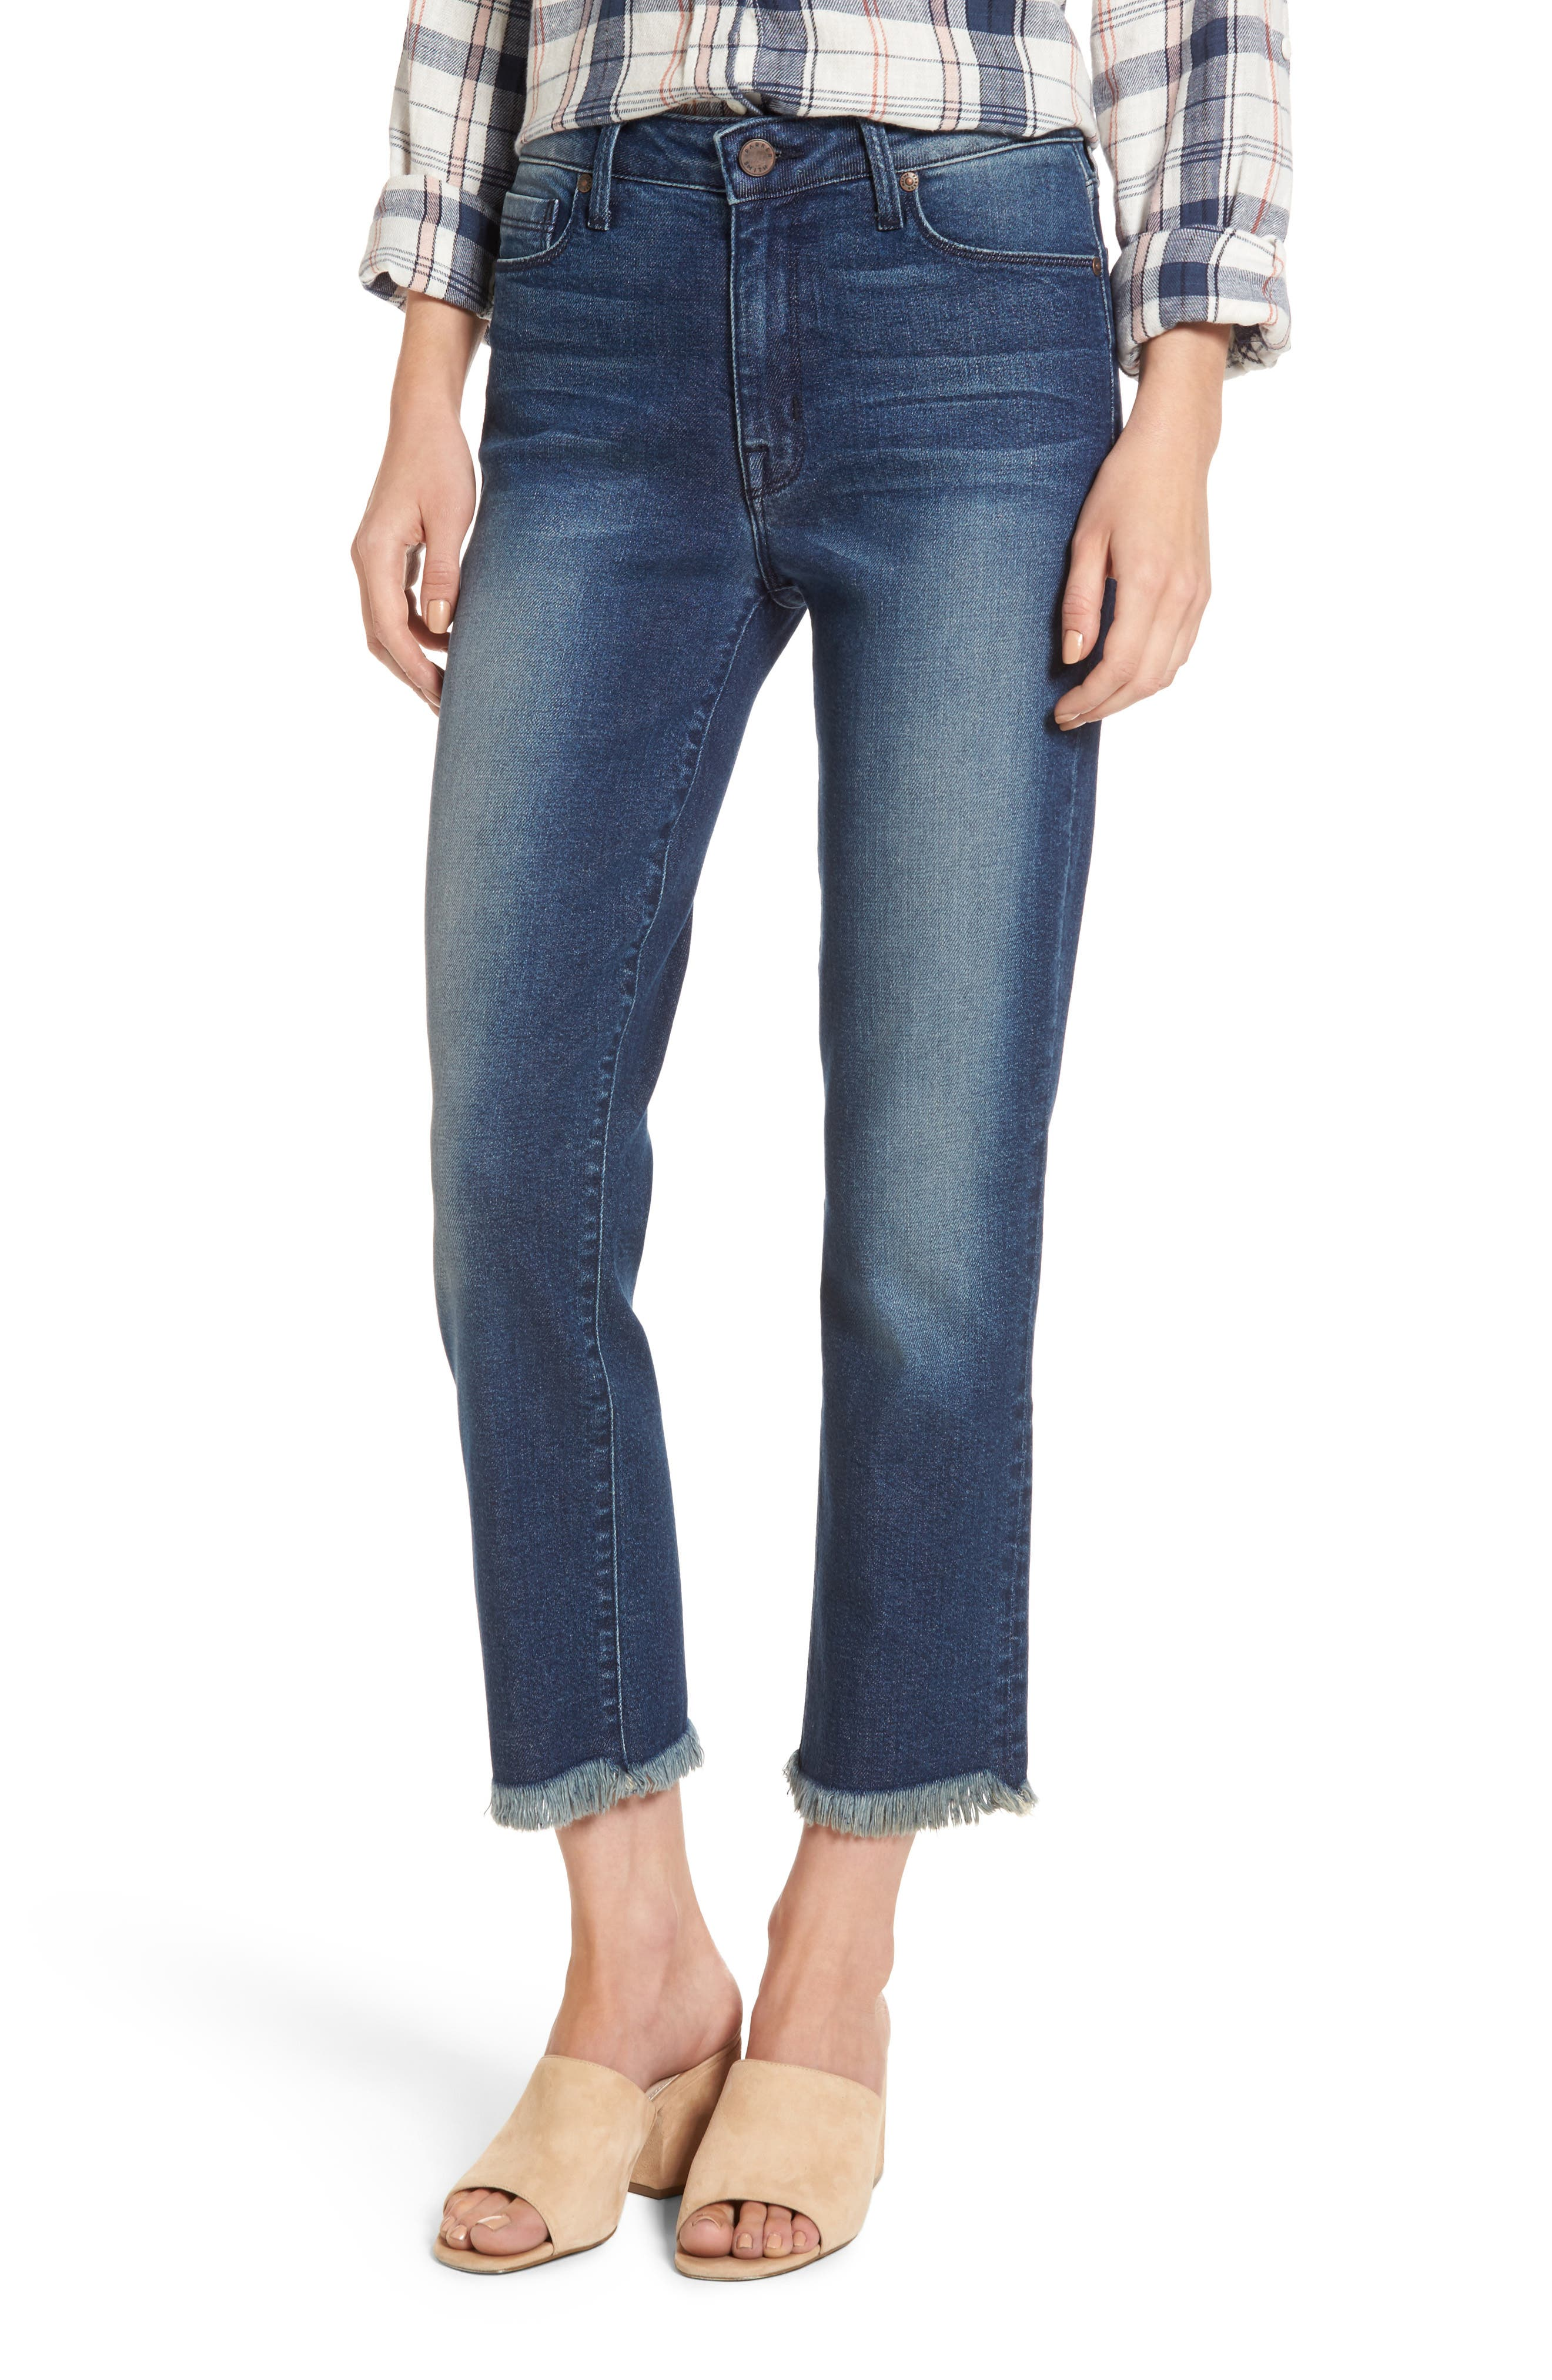 Alternate Image 1 Selected - PARKER SMITH Pin-Up Crop Straight Leg Jeans (Captain)